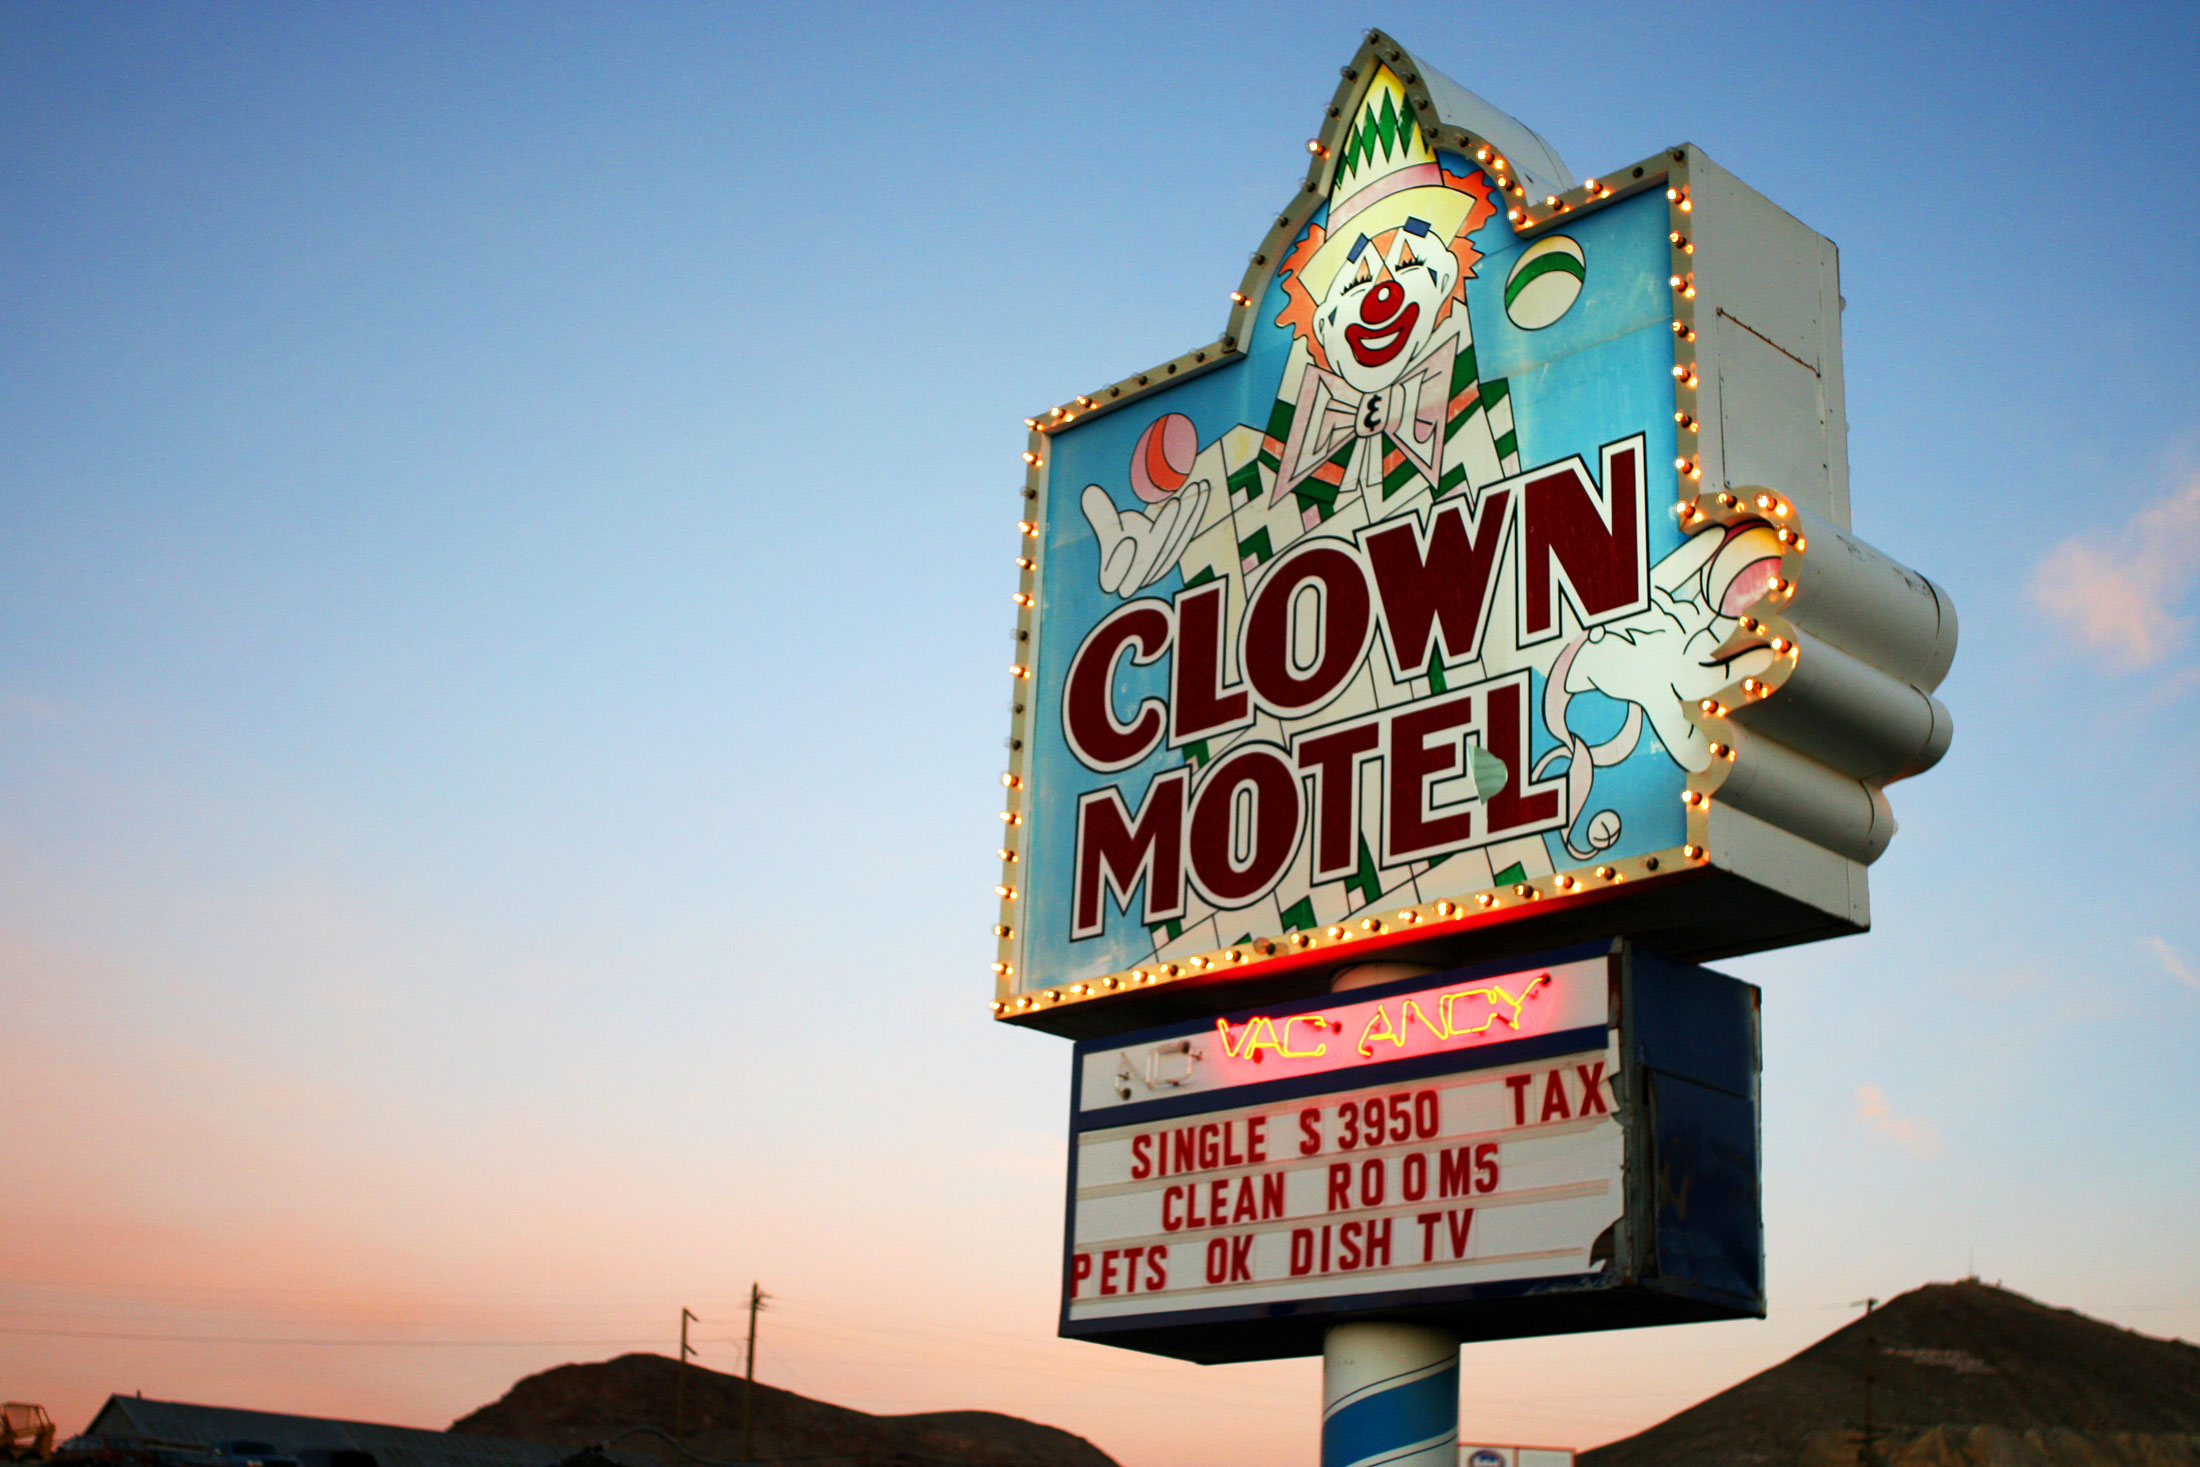 The Clown Motel in Tonopah, Nev.